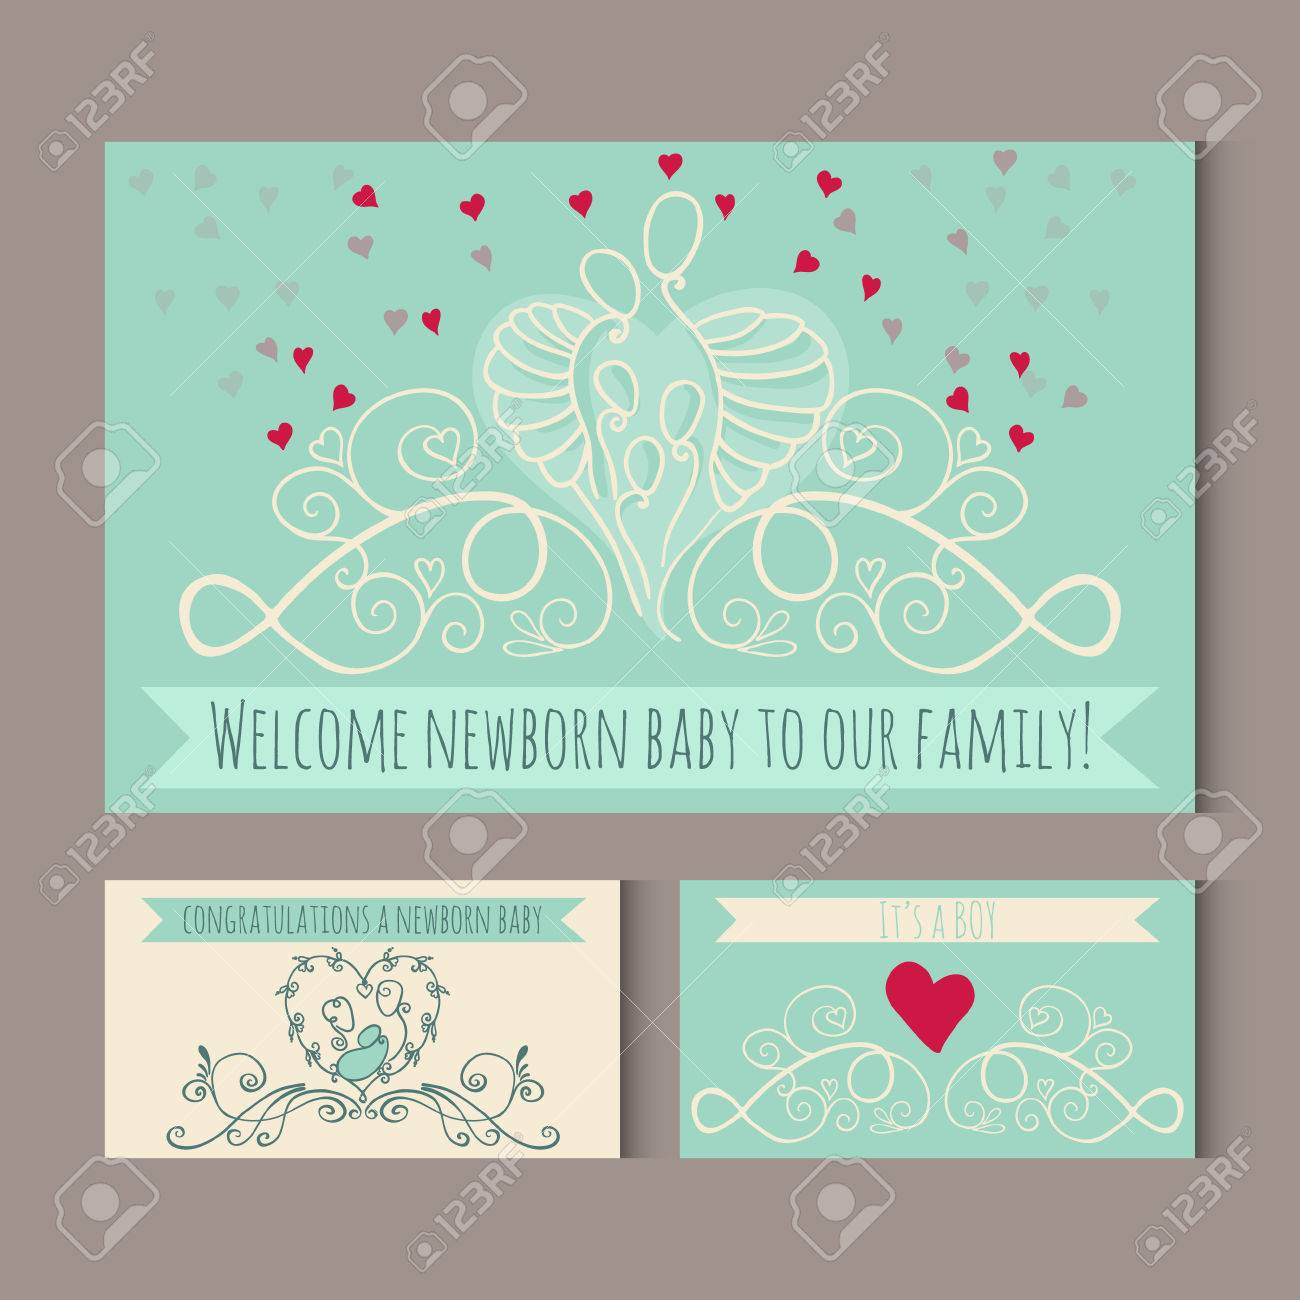 Greeting Cards With Symbols Of Happy Family Welcome Newborn